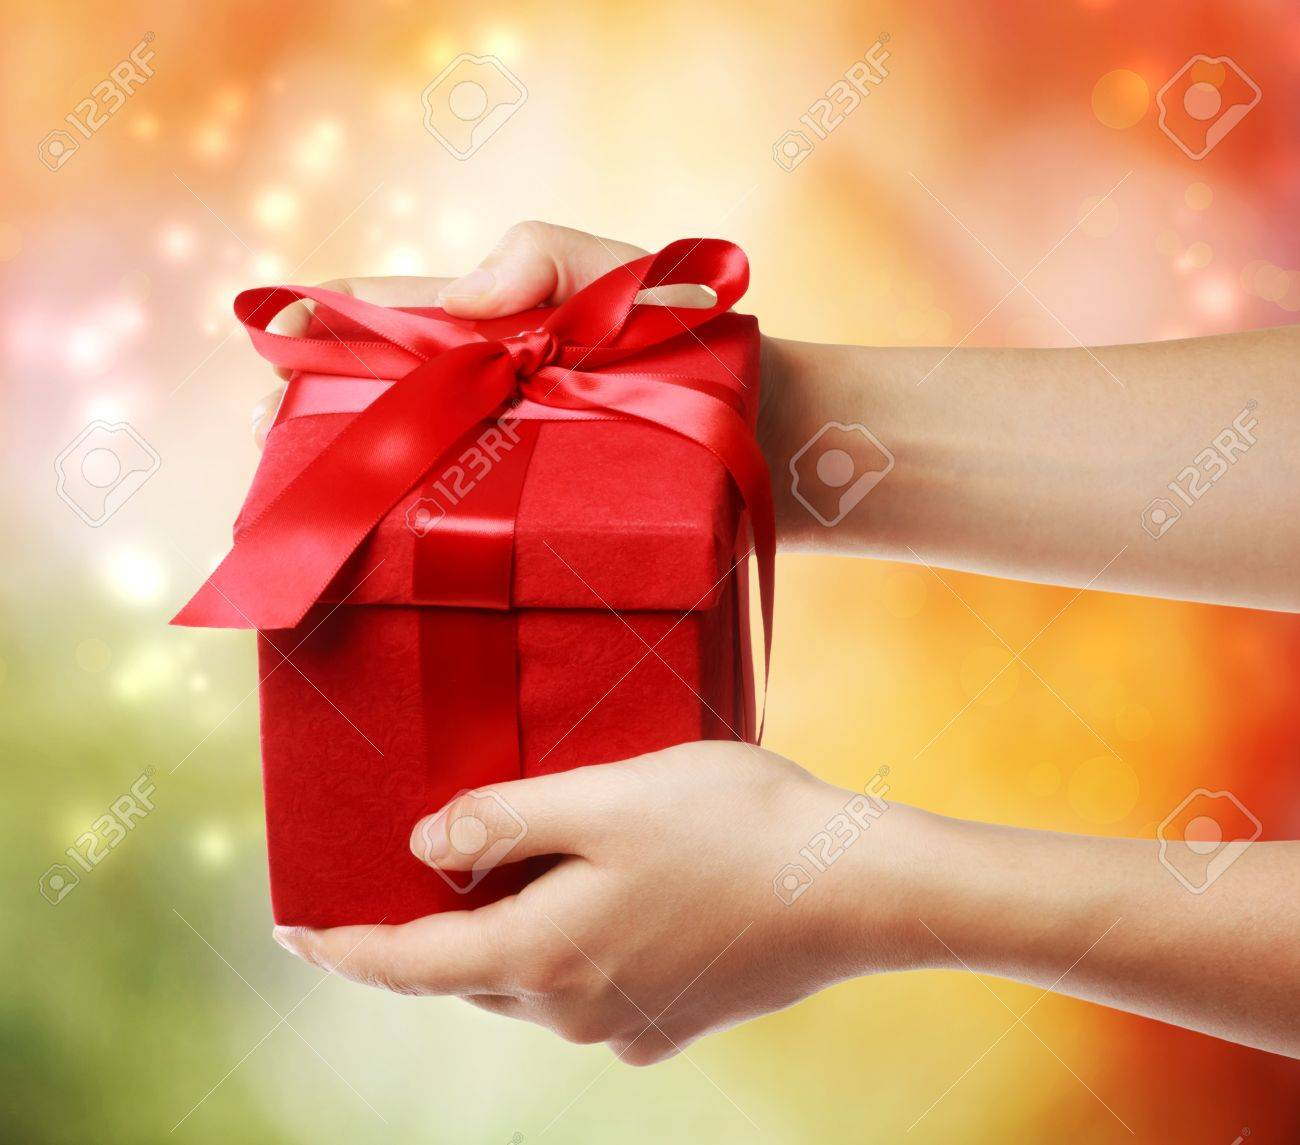 Woman holding a red gift box on a bright holiday lights background Stock Photo - 15870478